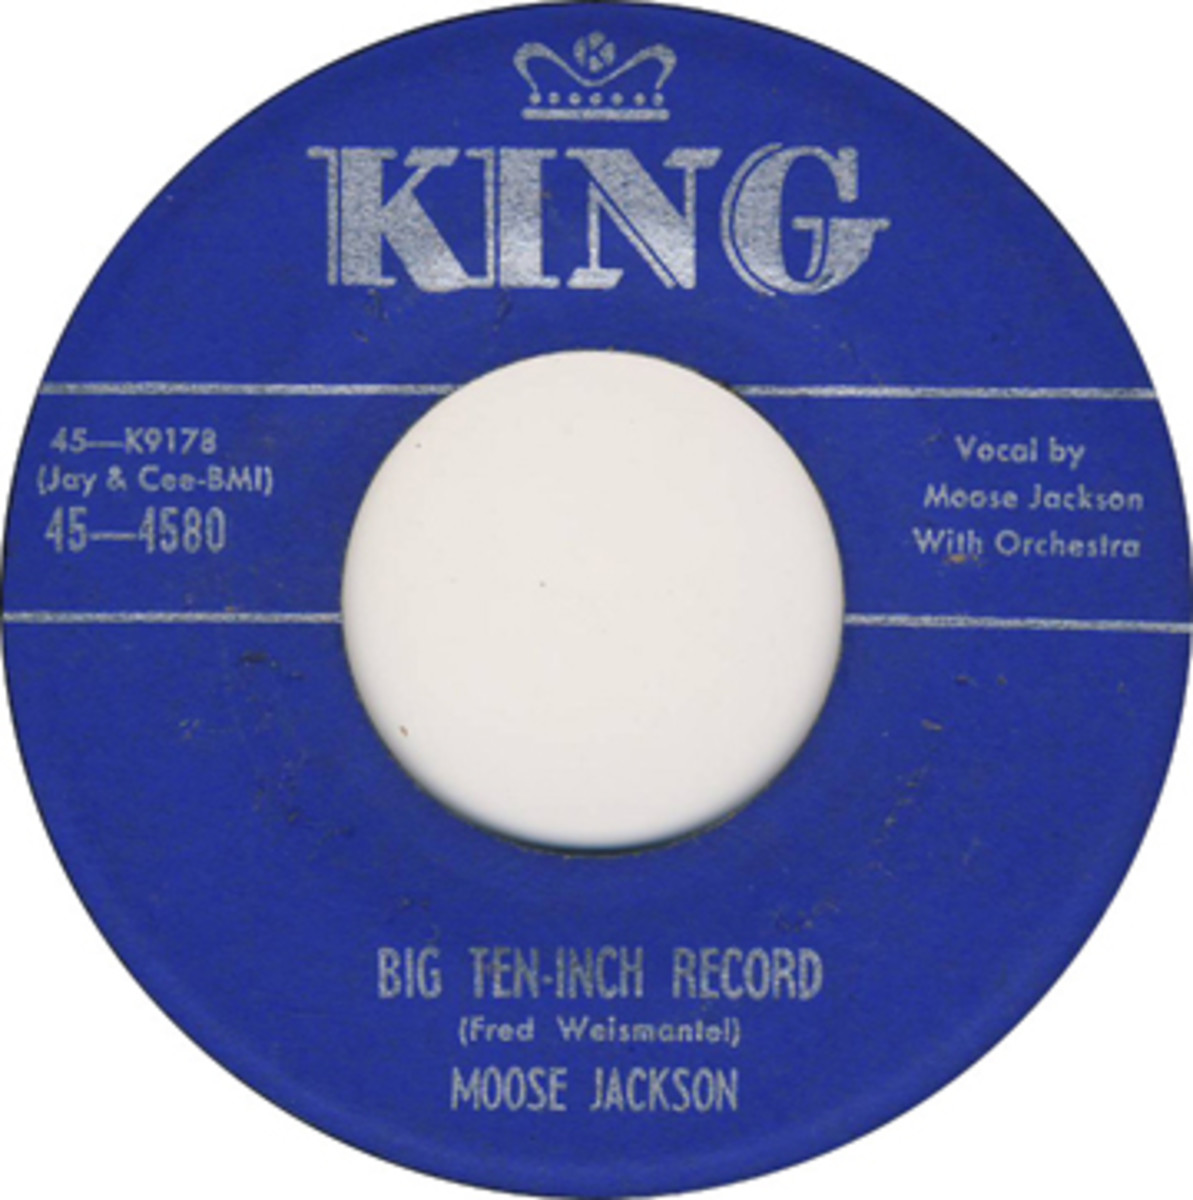 Tyler covered 'Big Ten-Inch' Record, but Bull Moose Jackson did it ...